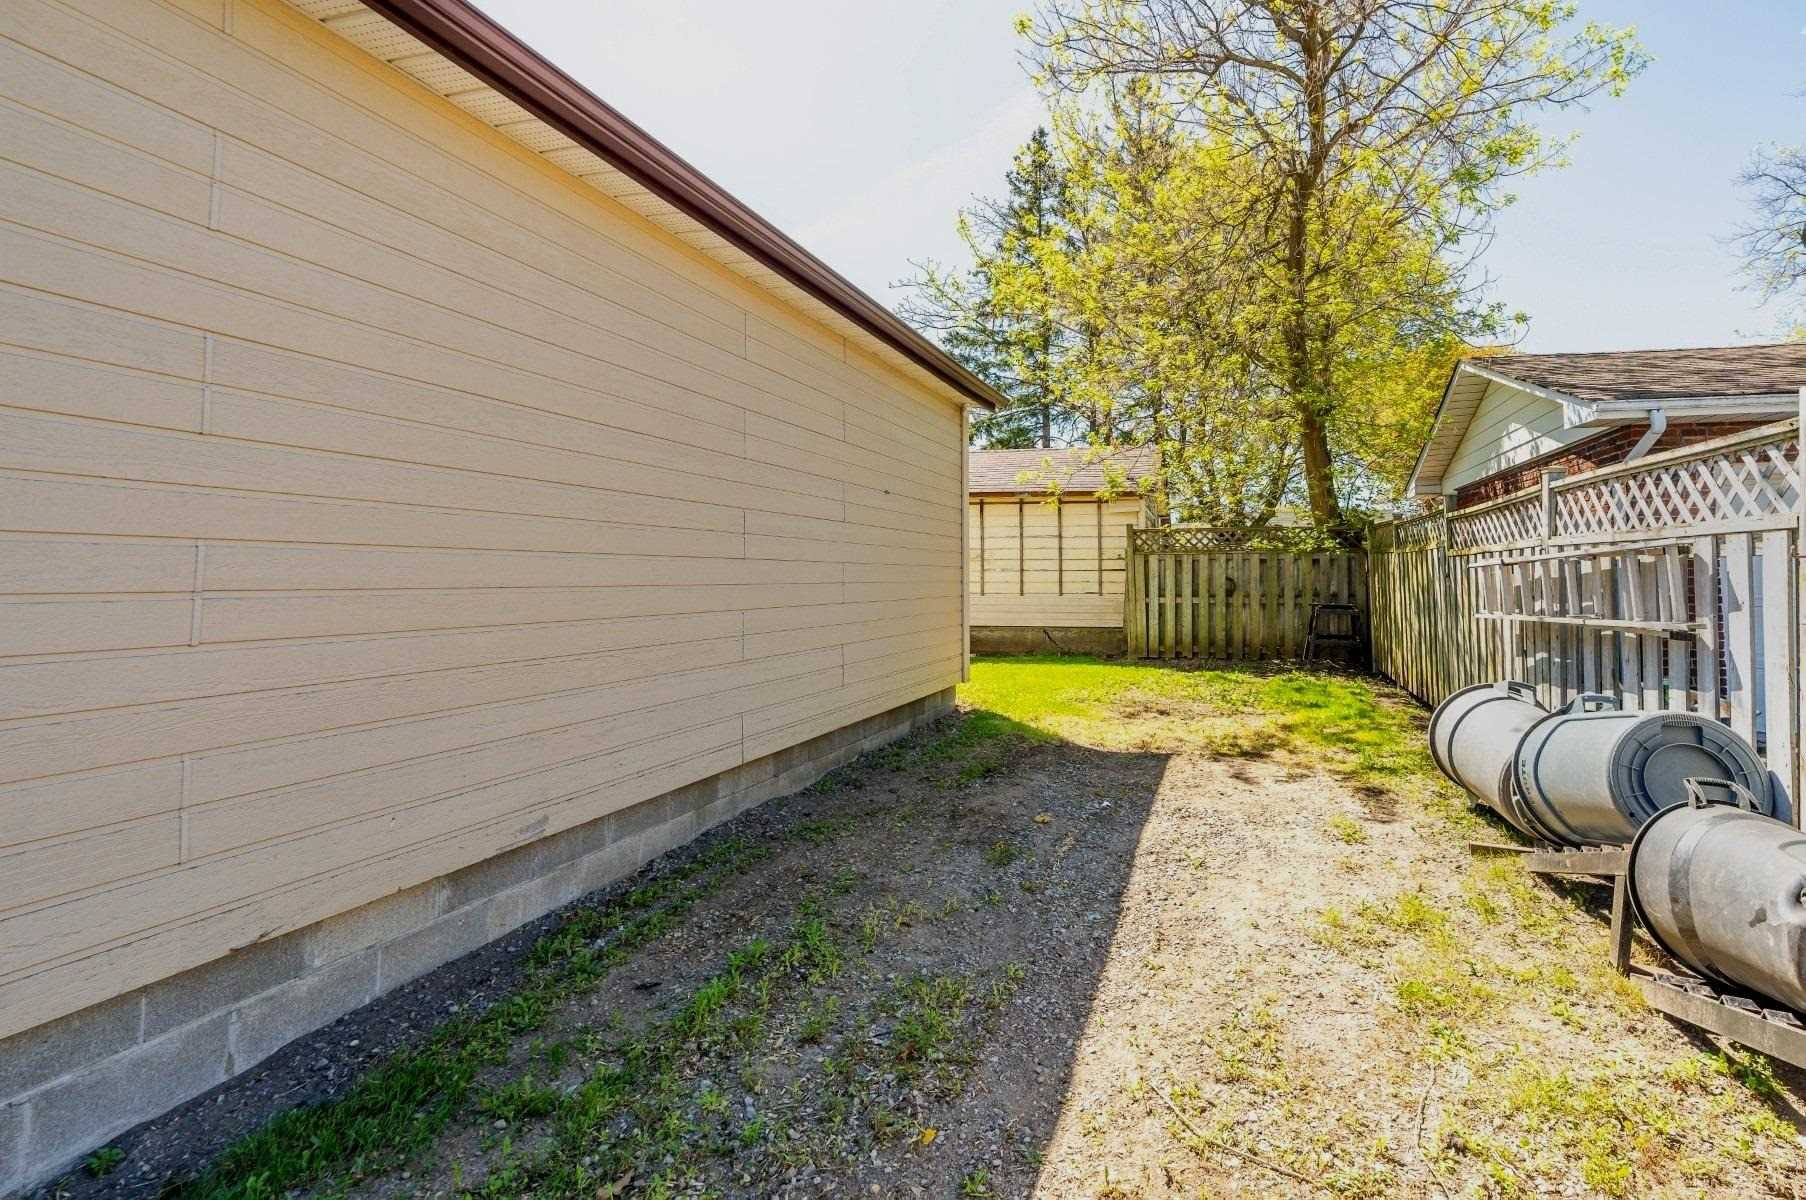 Photo 5: Photos: 40 Eastlawn Street in Oshawa: Donevan House (Bungalow) for sale : MLS®# E4769026